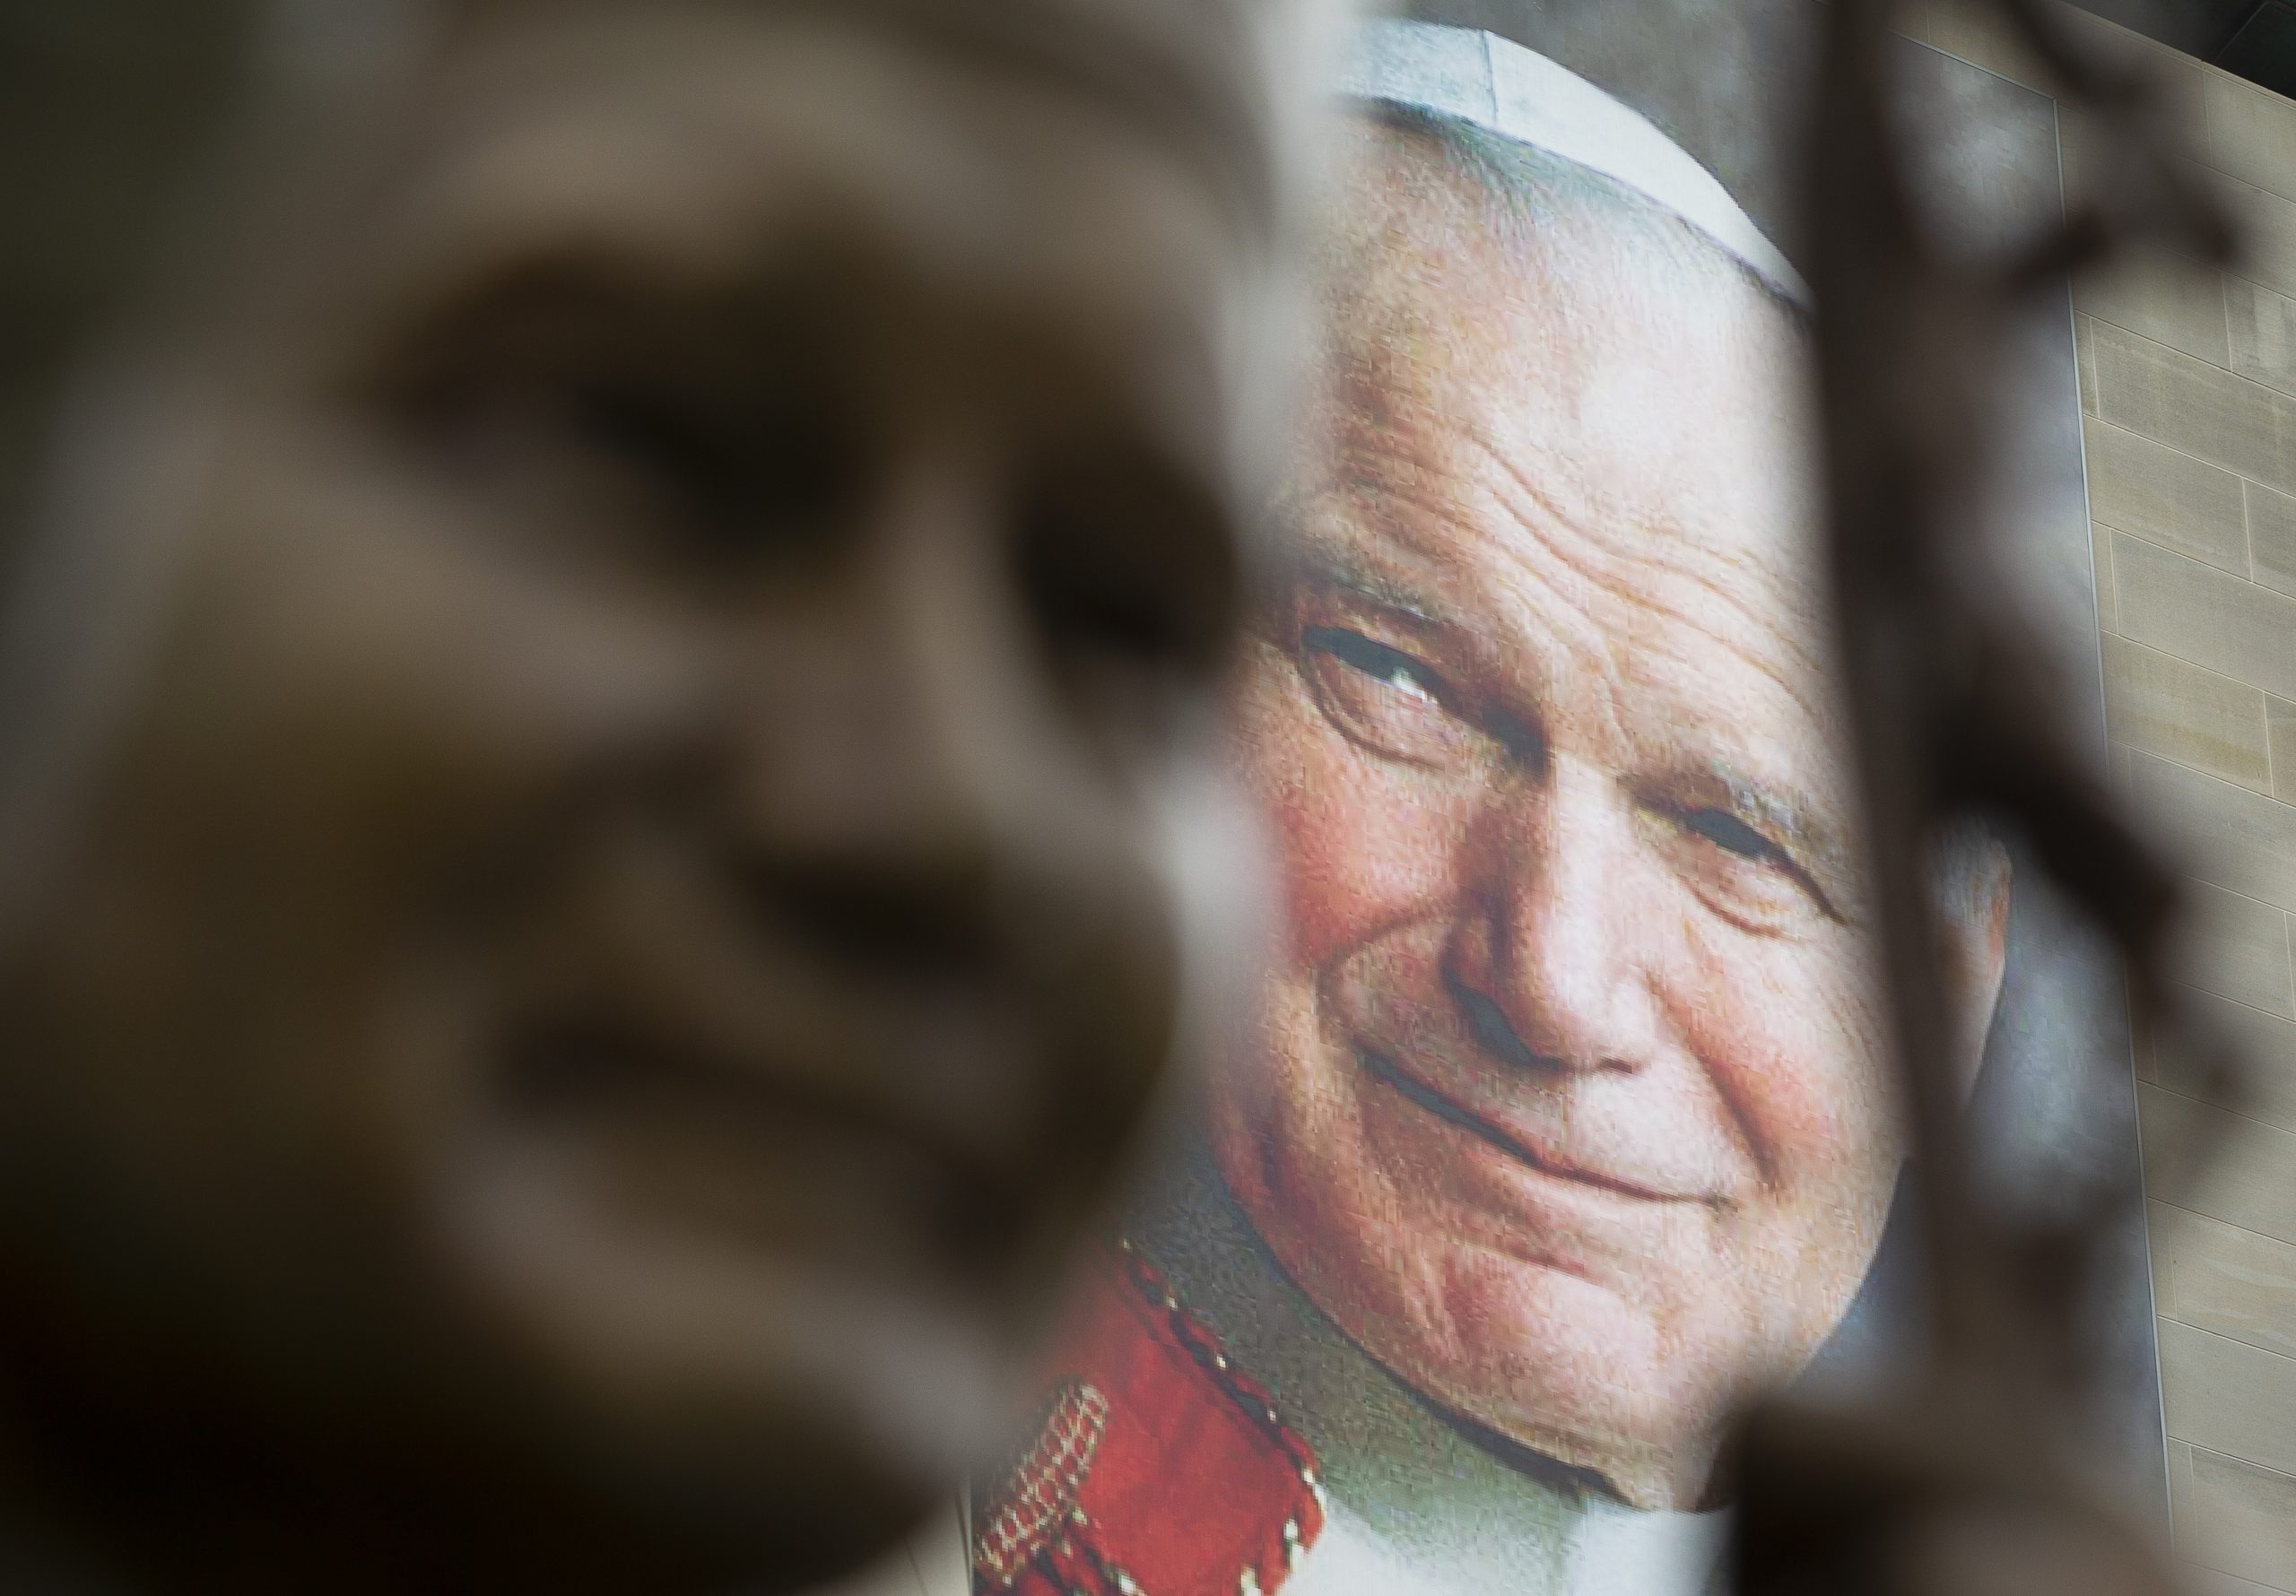 No evidence St. John Paul II covered up abuse, investigators say